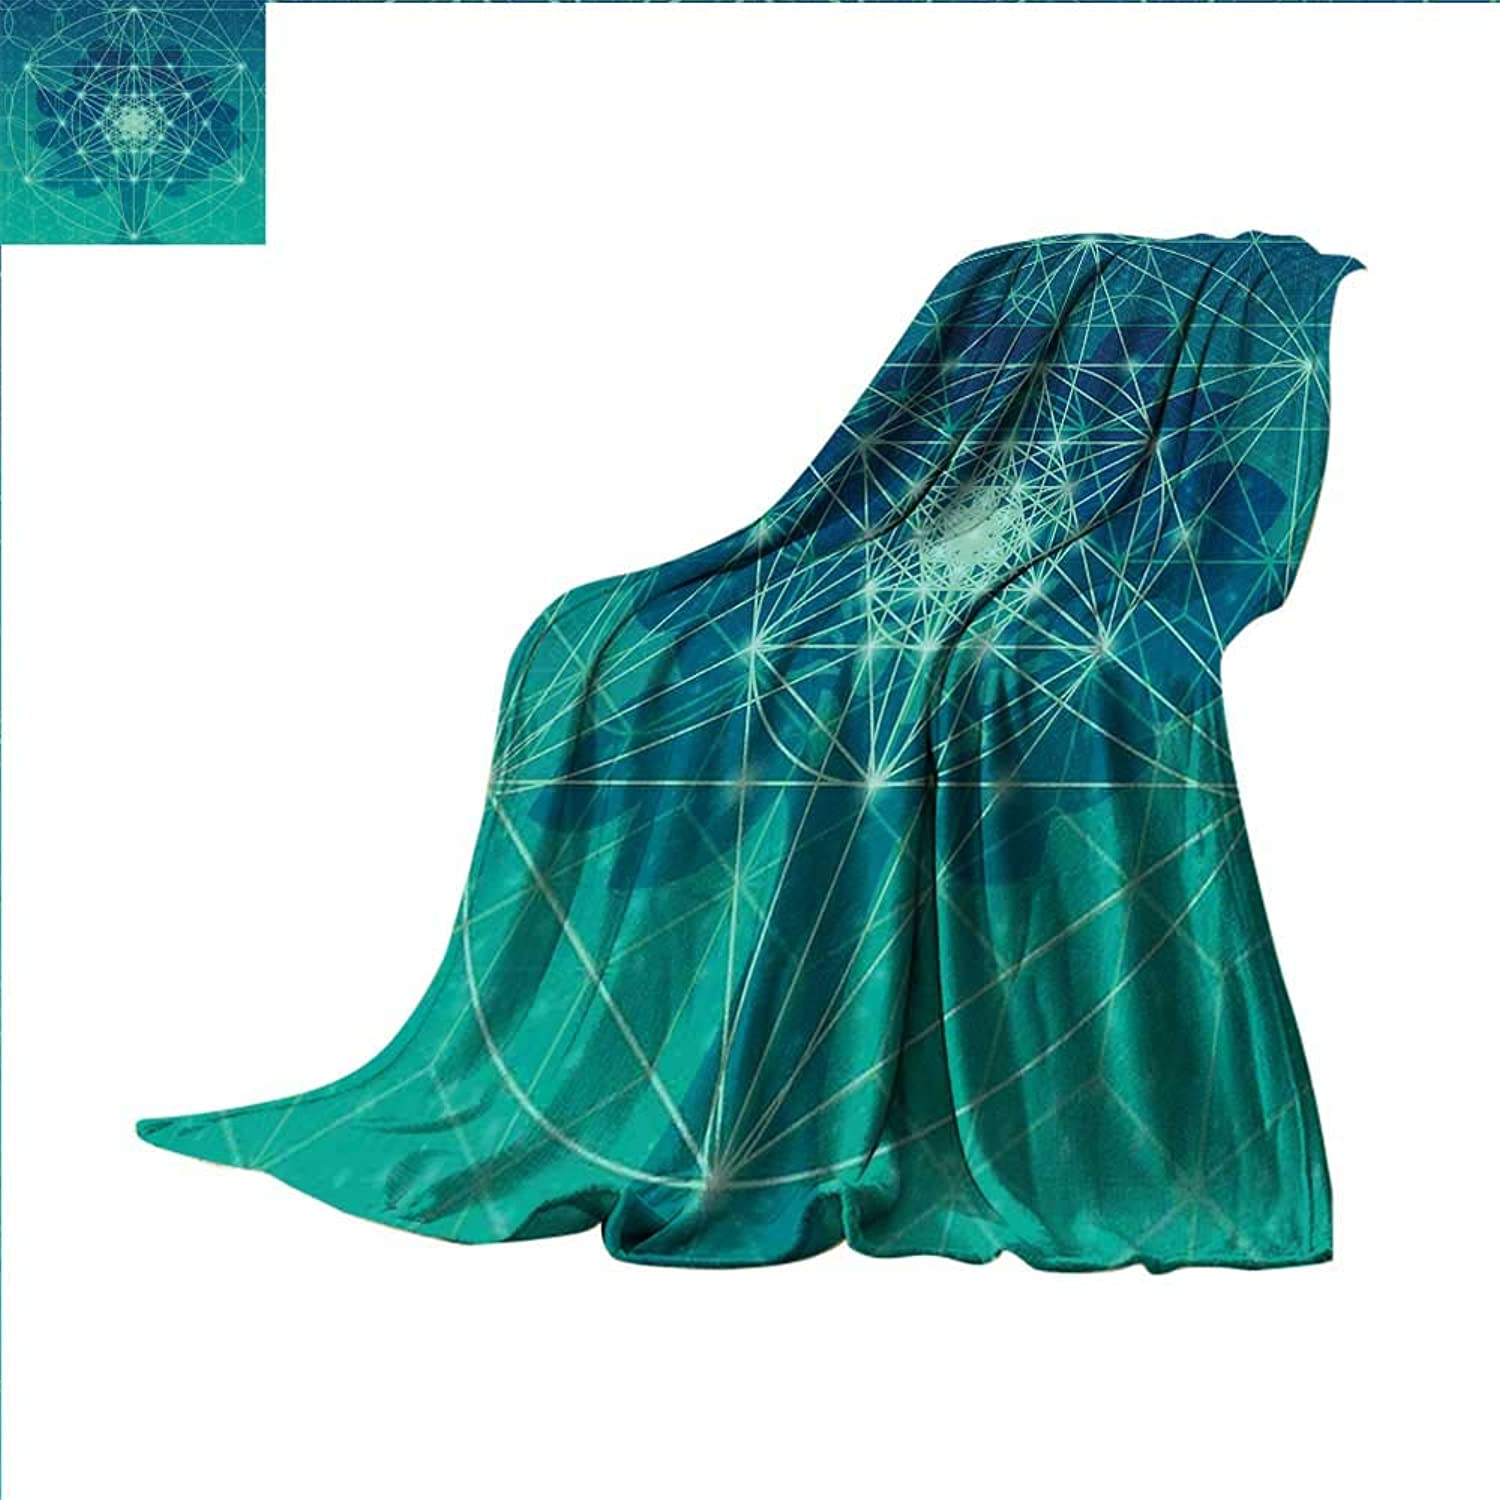 Smallbeefly Sacred Geometry Digital Printing Blanket Digital Futuristic Tree of Life with Space Plains Archaic Pattern Summer Quilt Comforter 60 x50  Petrol bluee Green